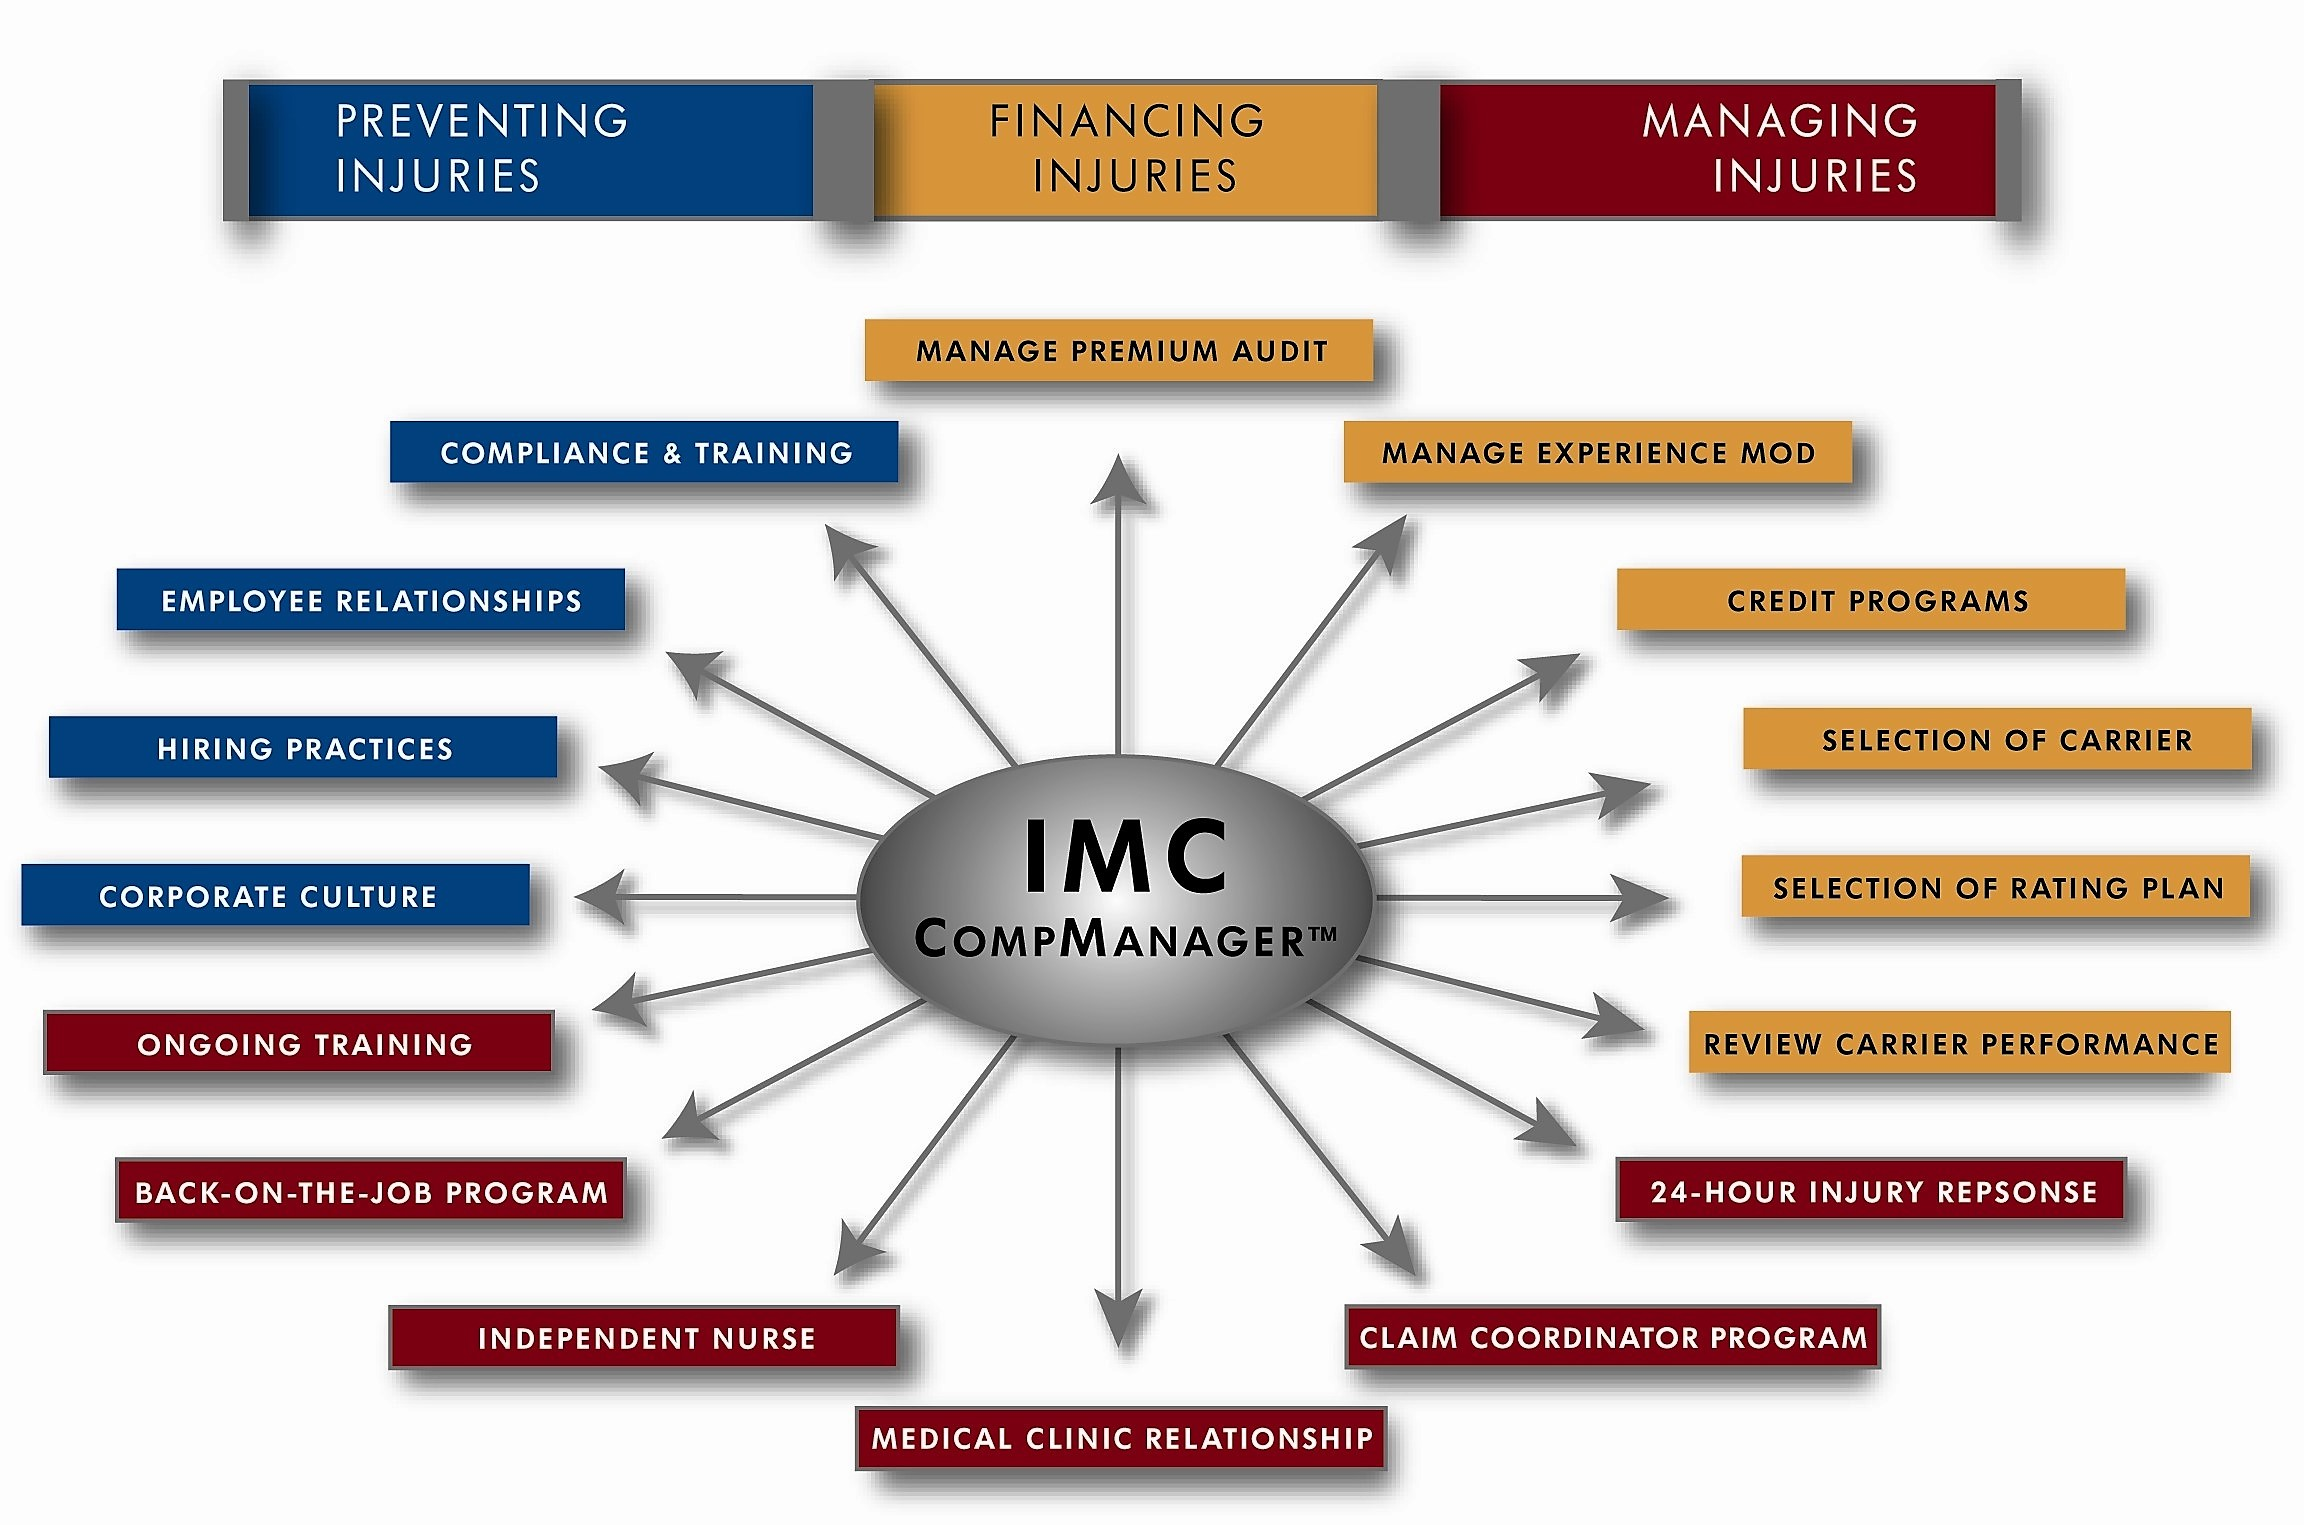 IMC CompManager Diagram